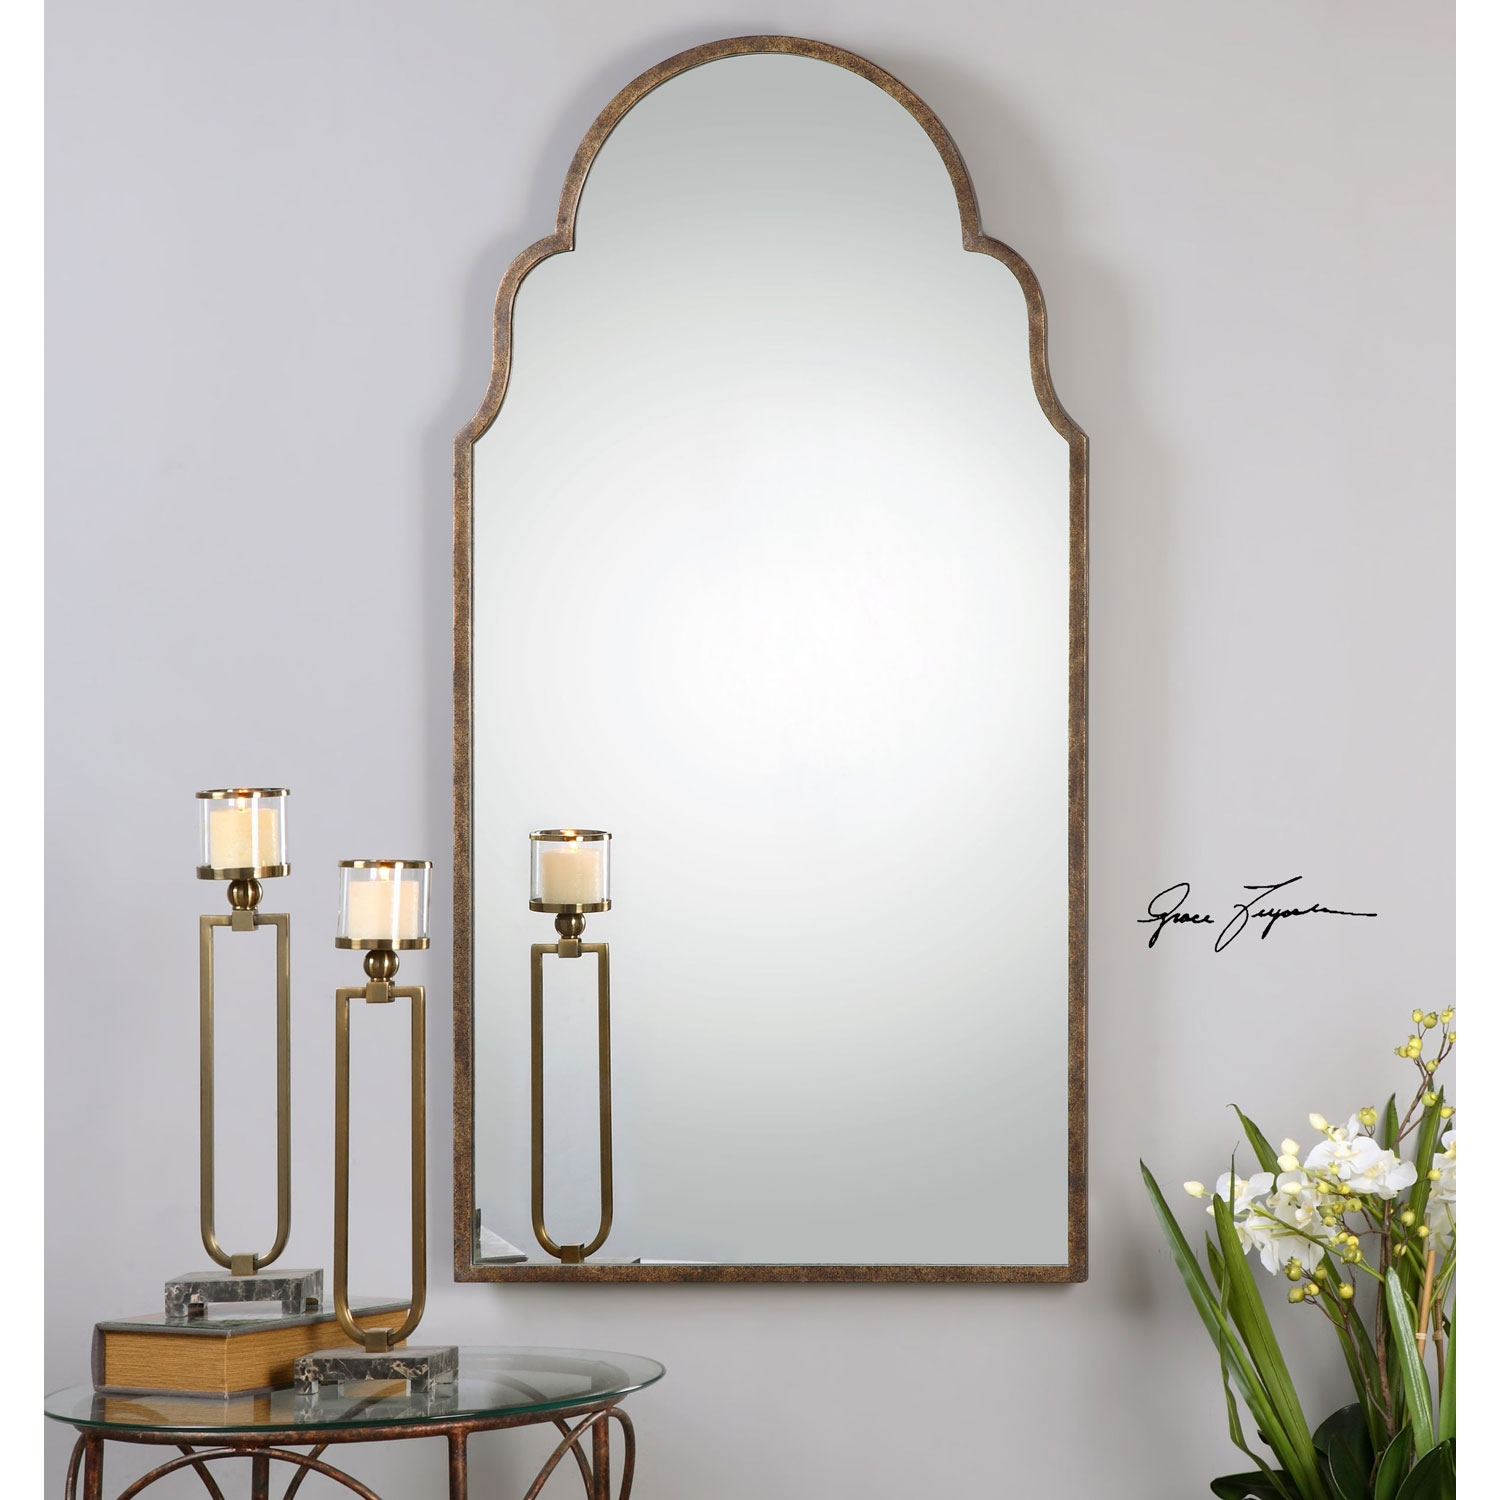 Brayden Rust Bronze Arch Mirror Uttermost Arched Crowned Mirrors With Regard To Arched Mirrors (Image 9 of 15)